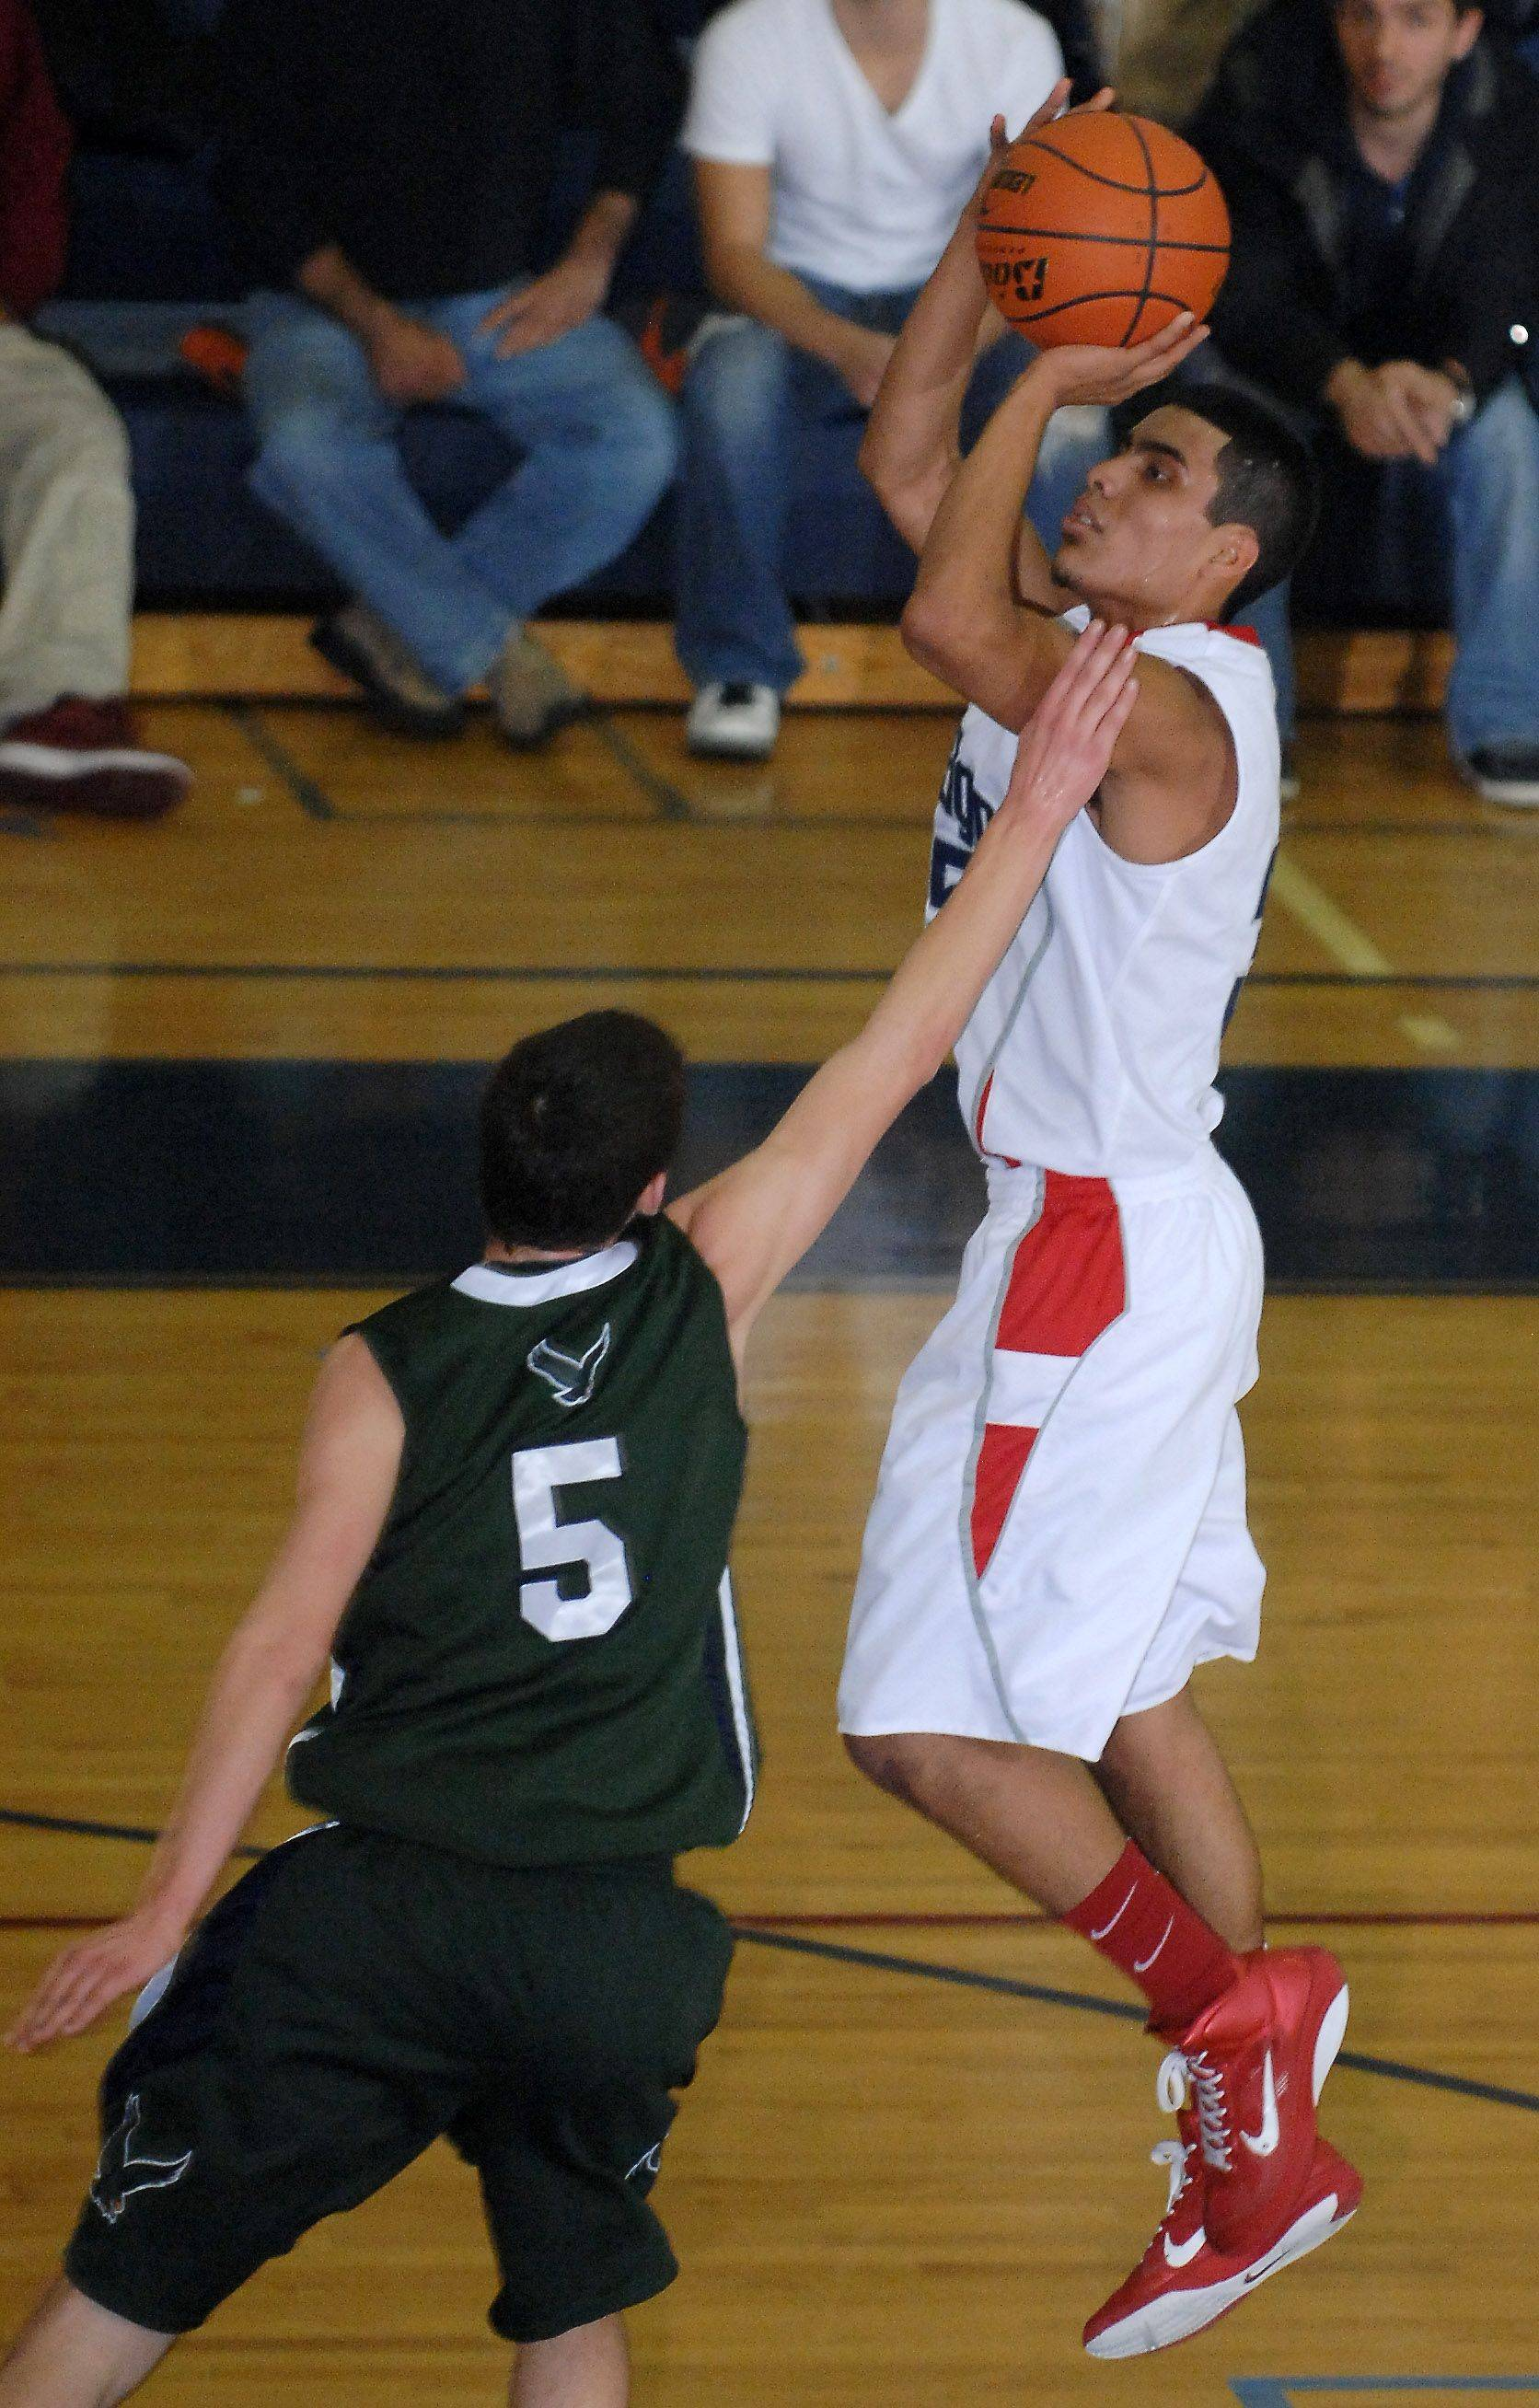 South Elgin's Martin Duarte scores over Bartlett's Matt Chaltin during Friday's game at South Elgin.